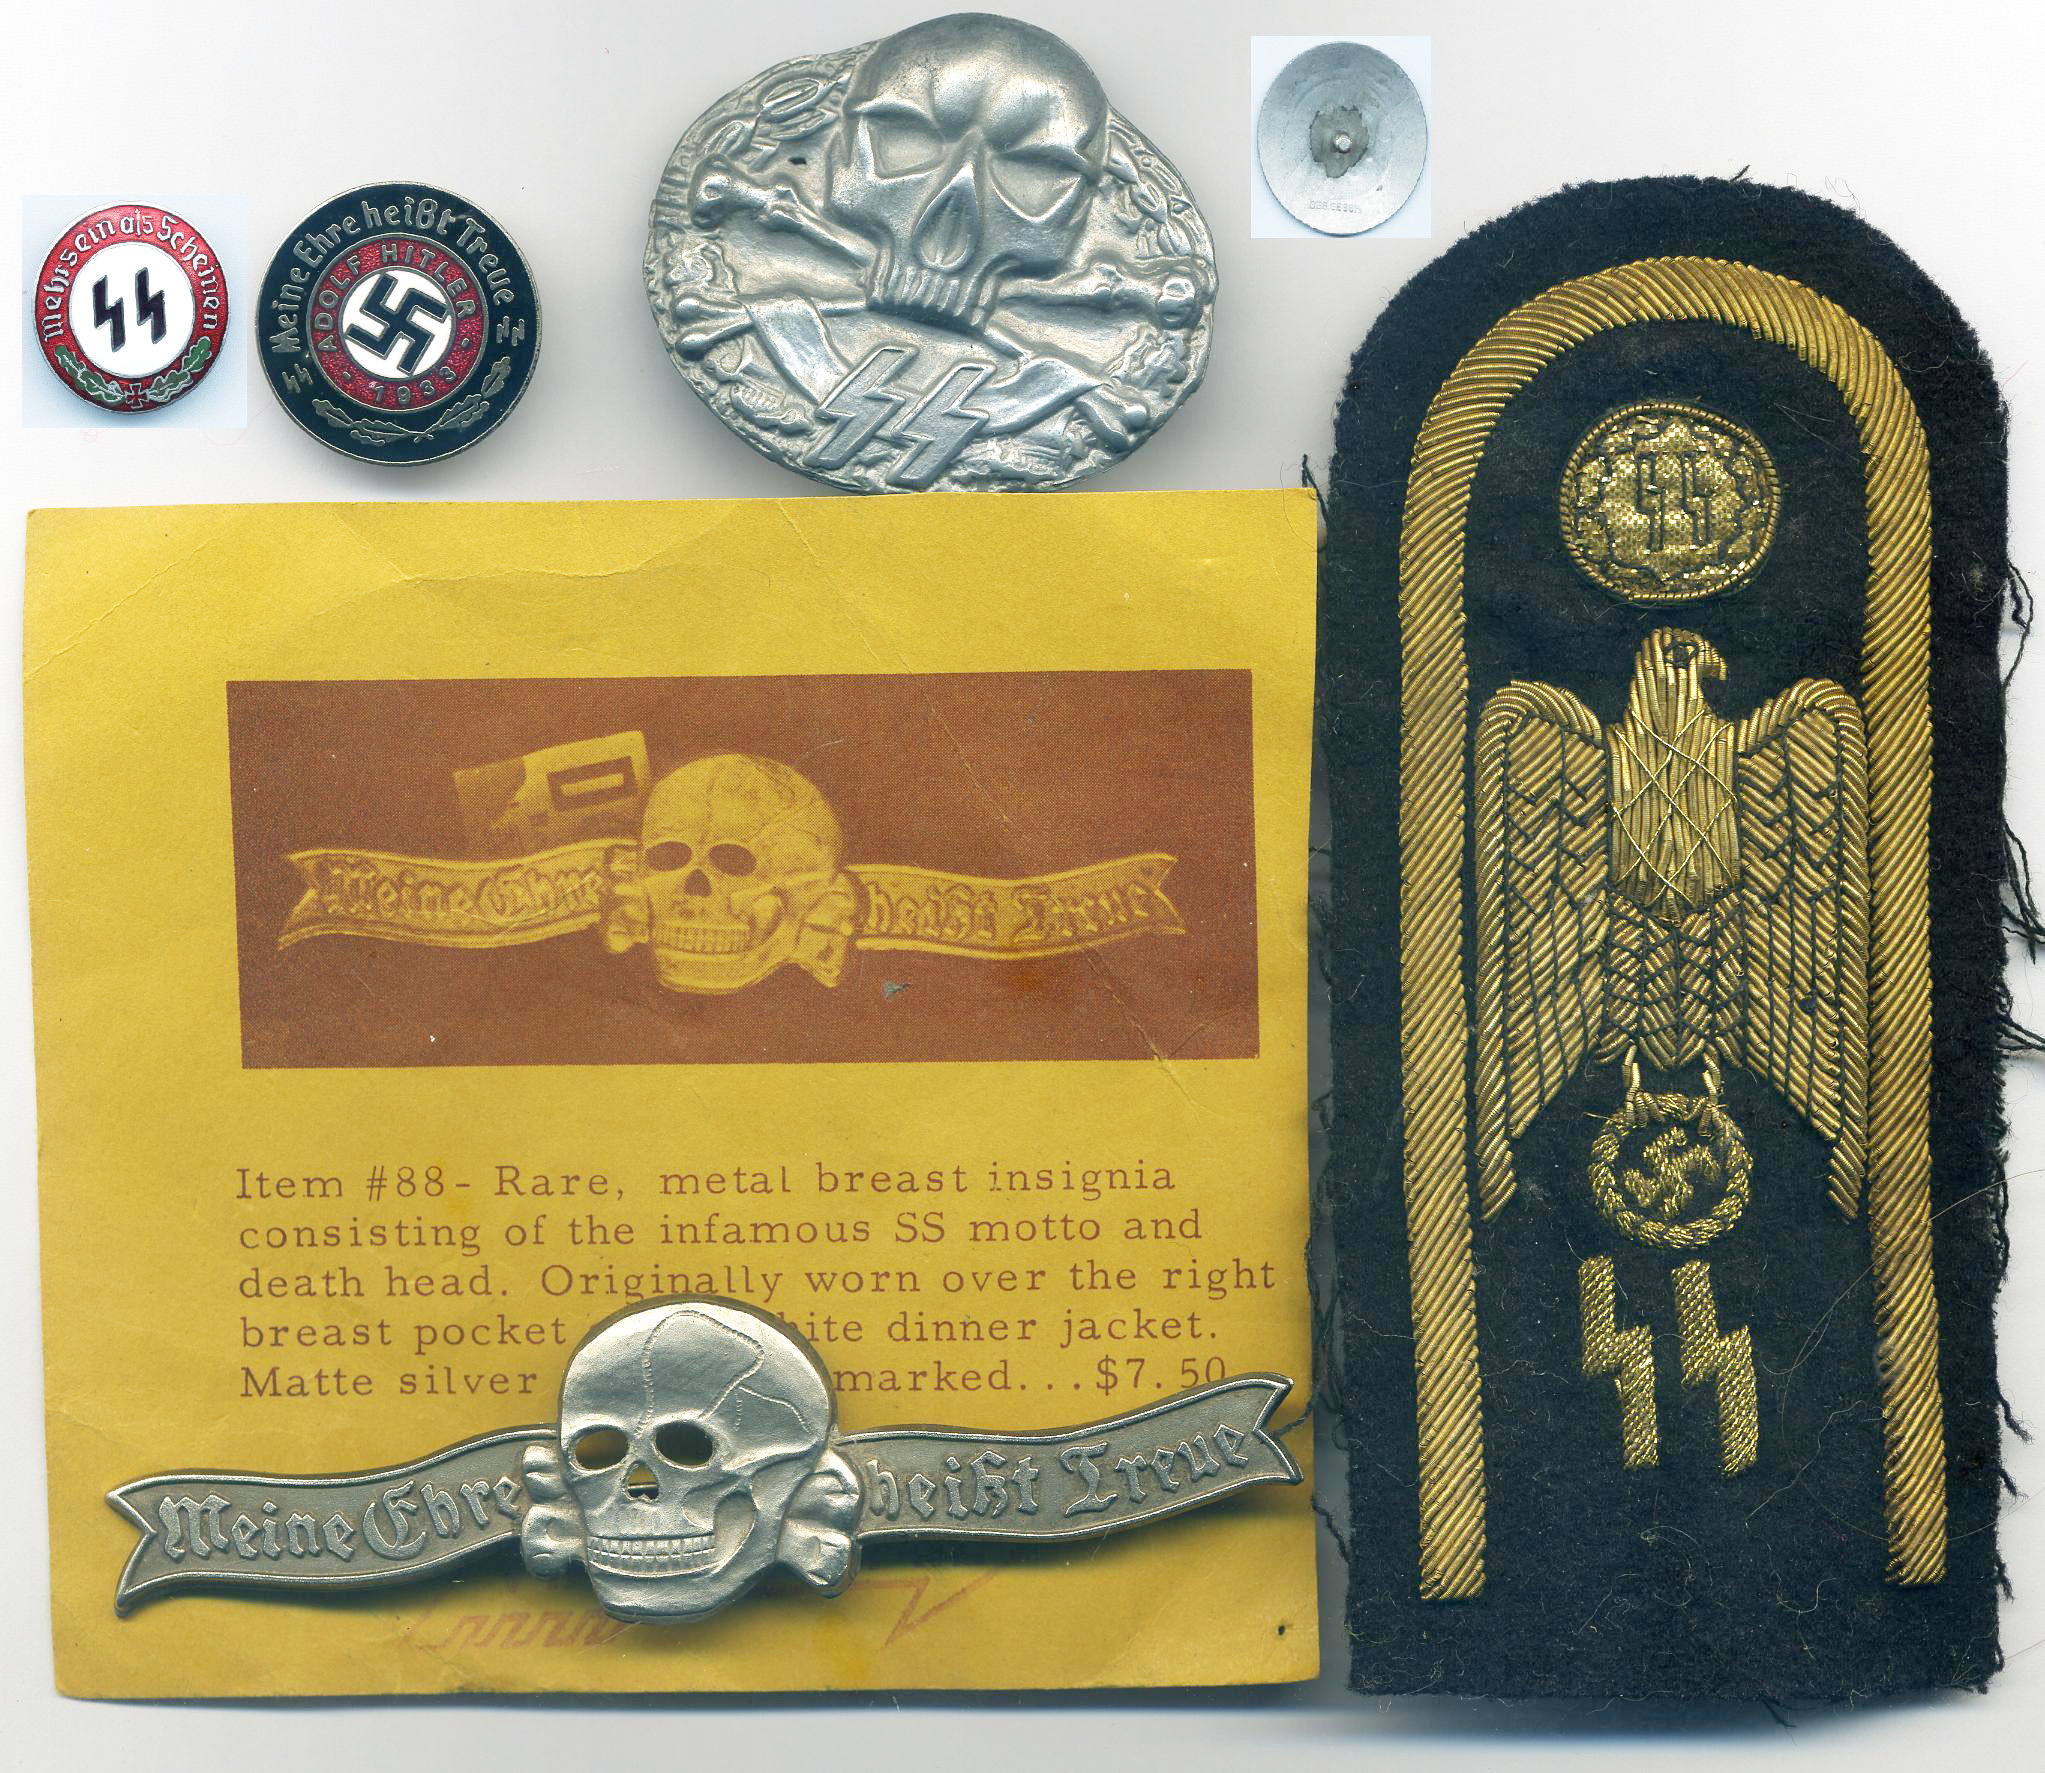 German copies of badges including SS Insignia and fantasy badges